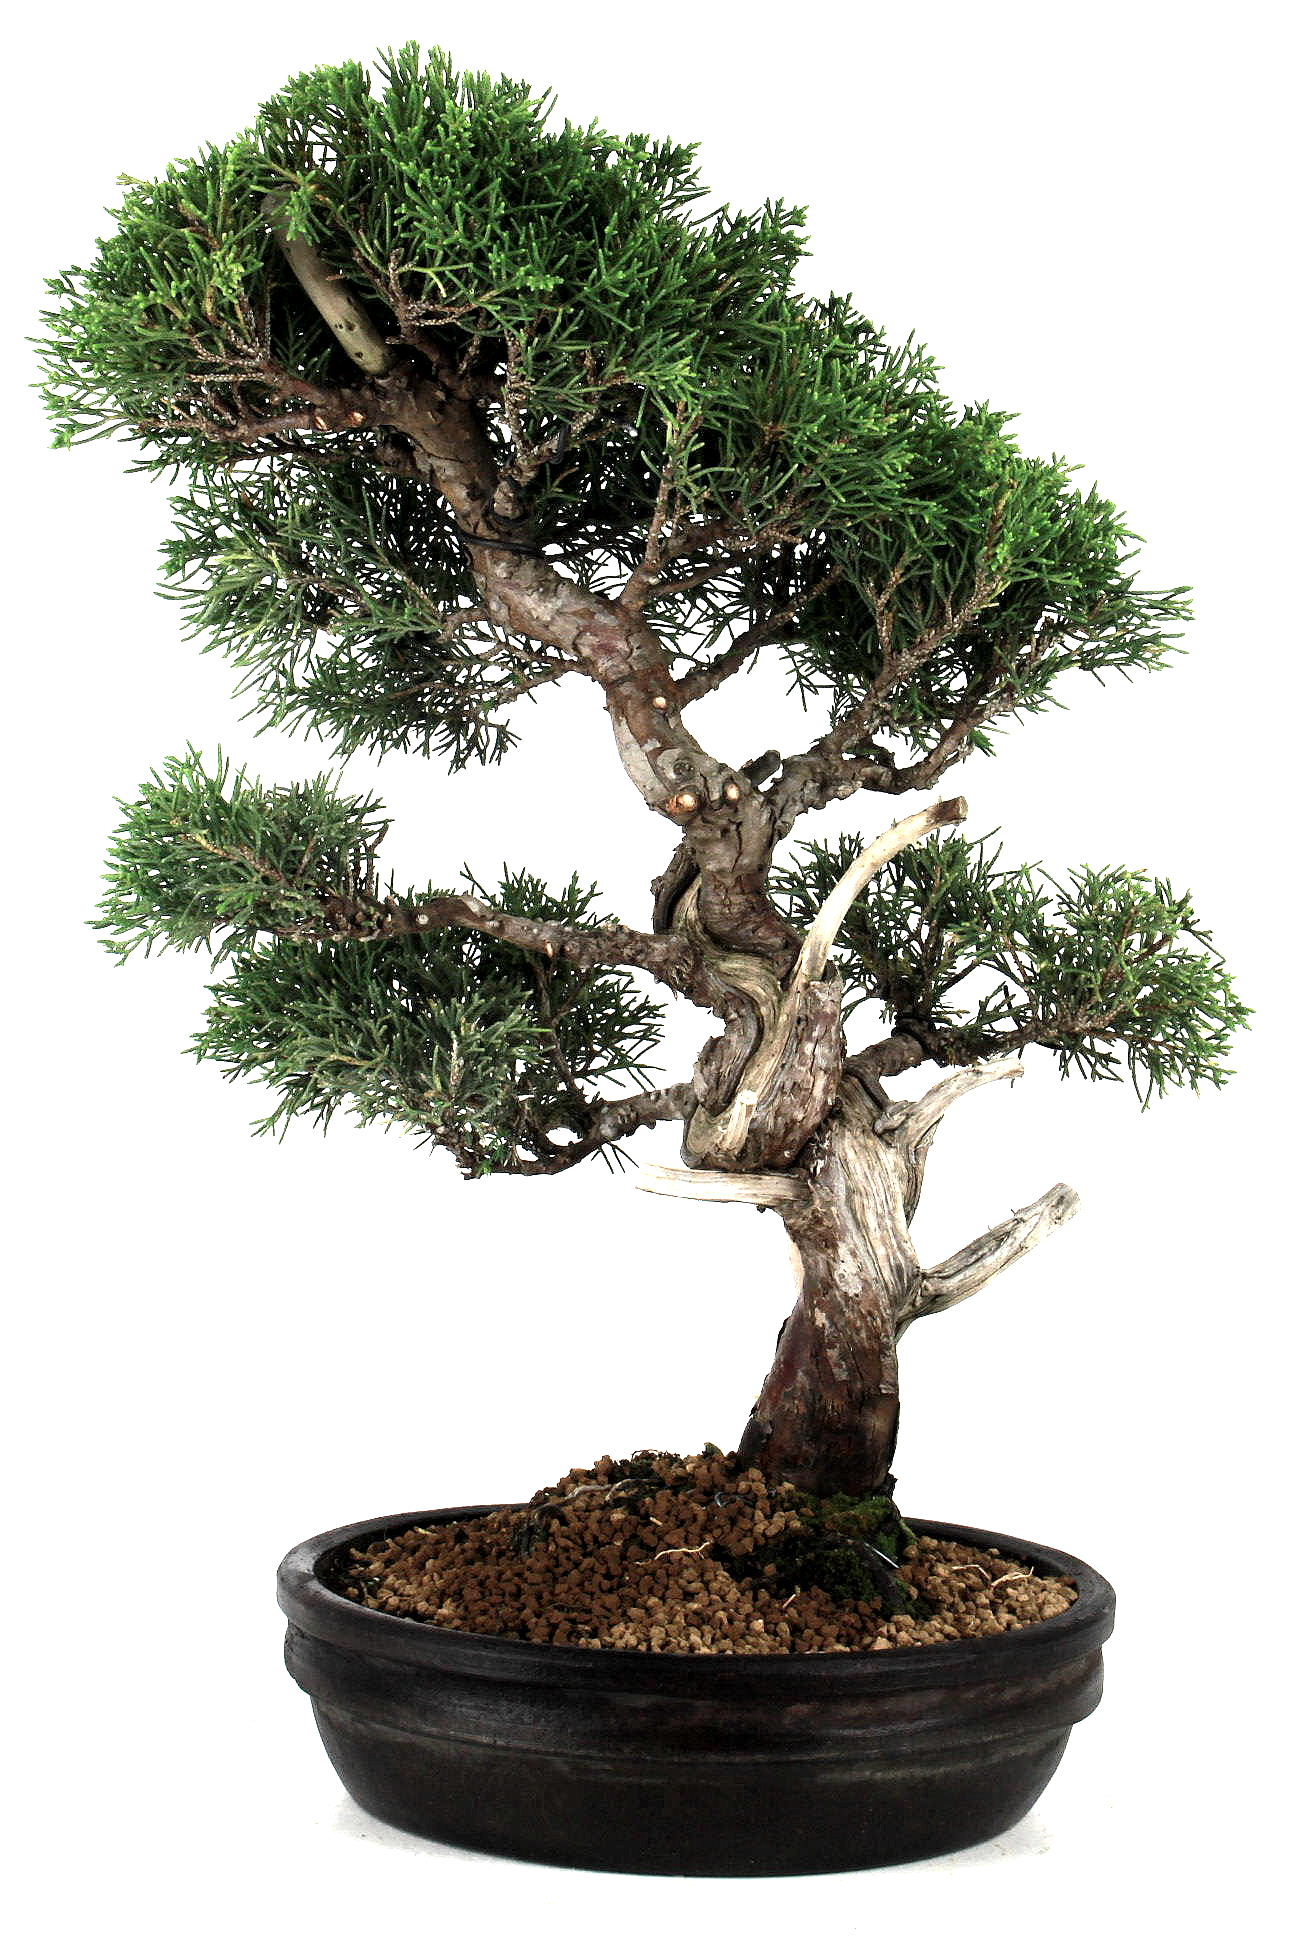 Bonsai wacholder juniperus chinensis 42 cm r215 bei oyaki for Bonsai onlineshop